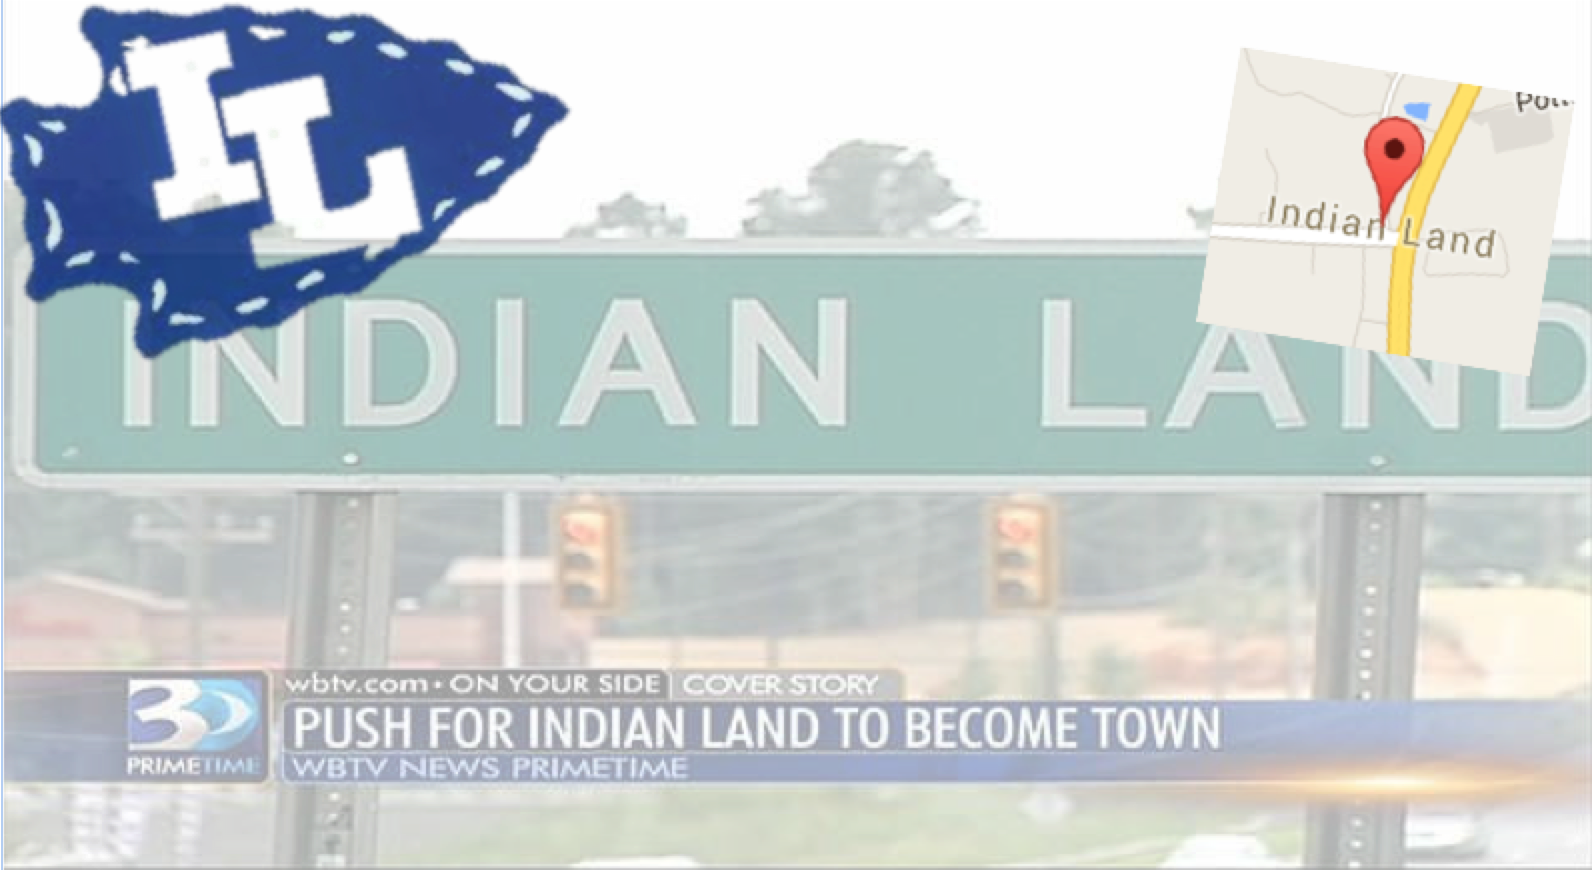 Indian Land to become town